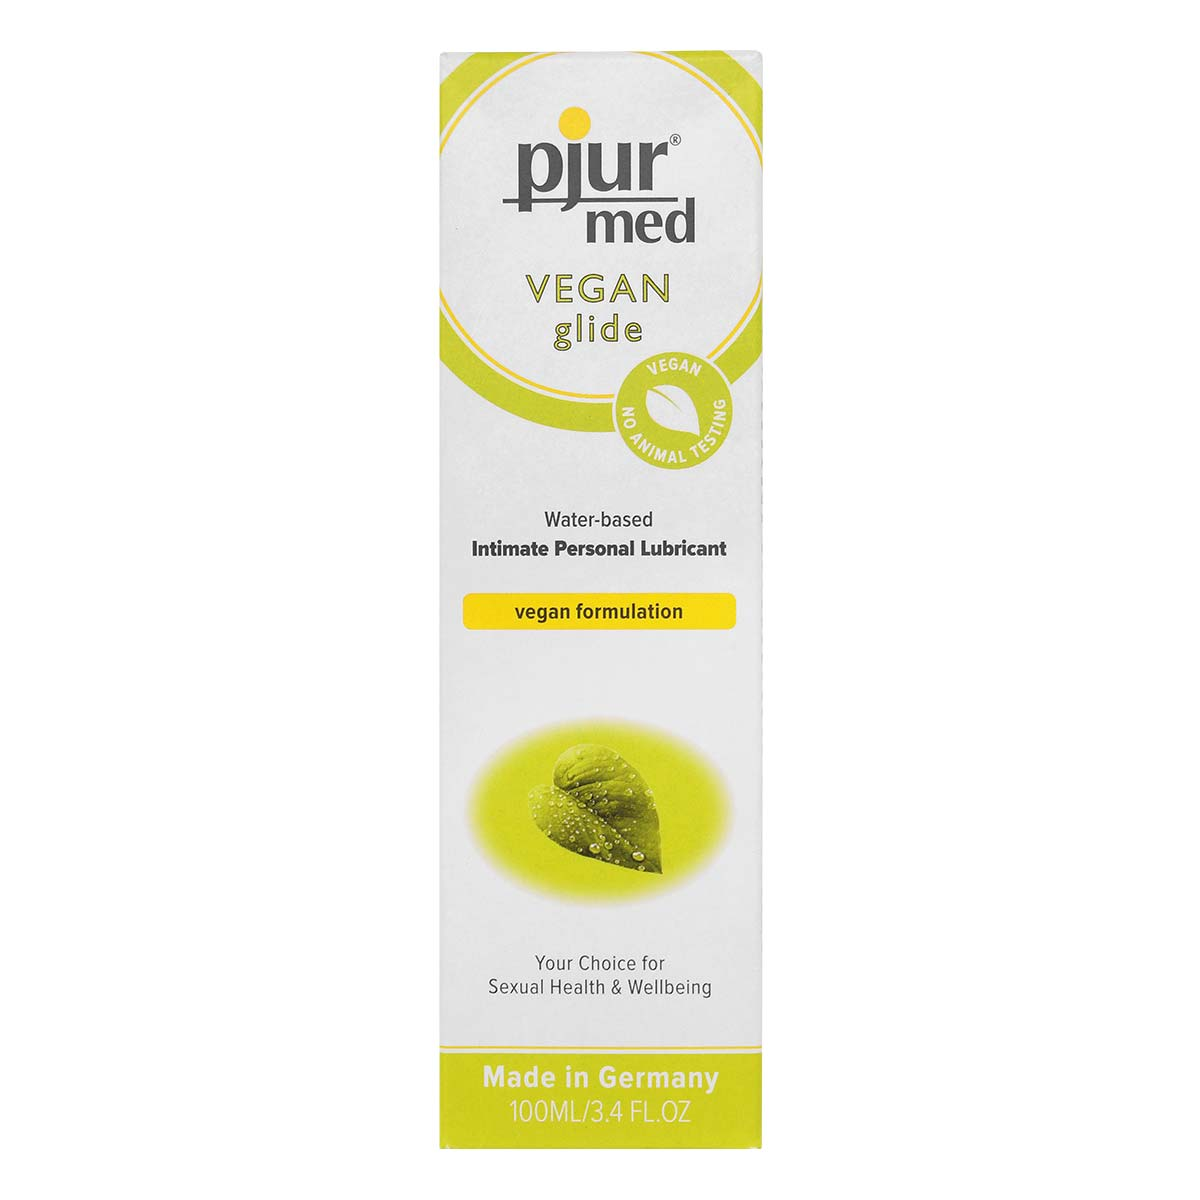 pjur med VEGAN glide 100ml Water-based Lubricant